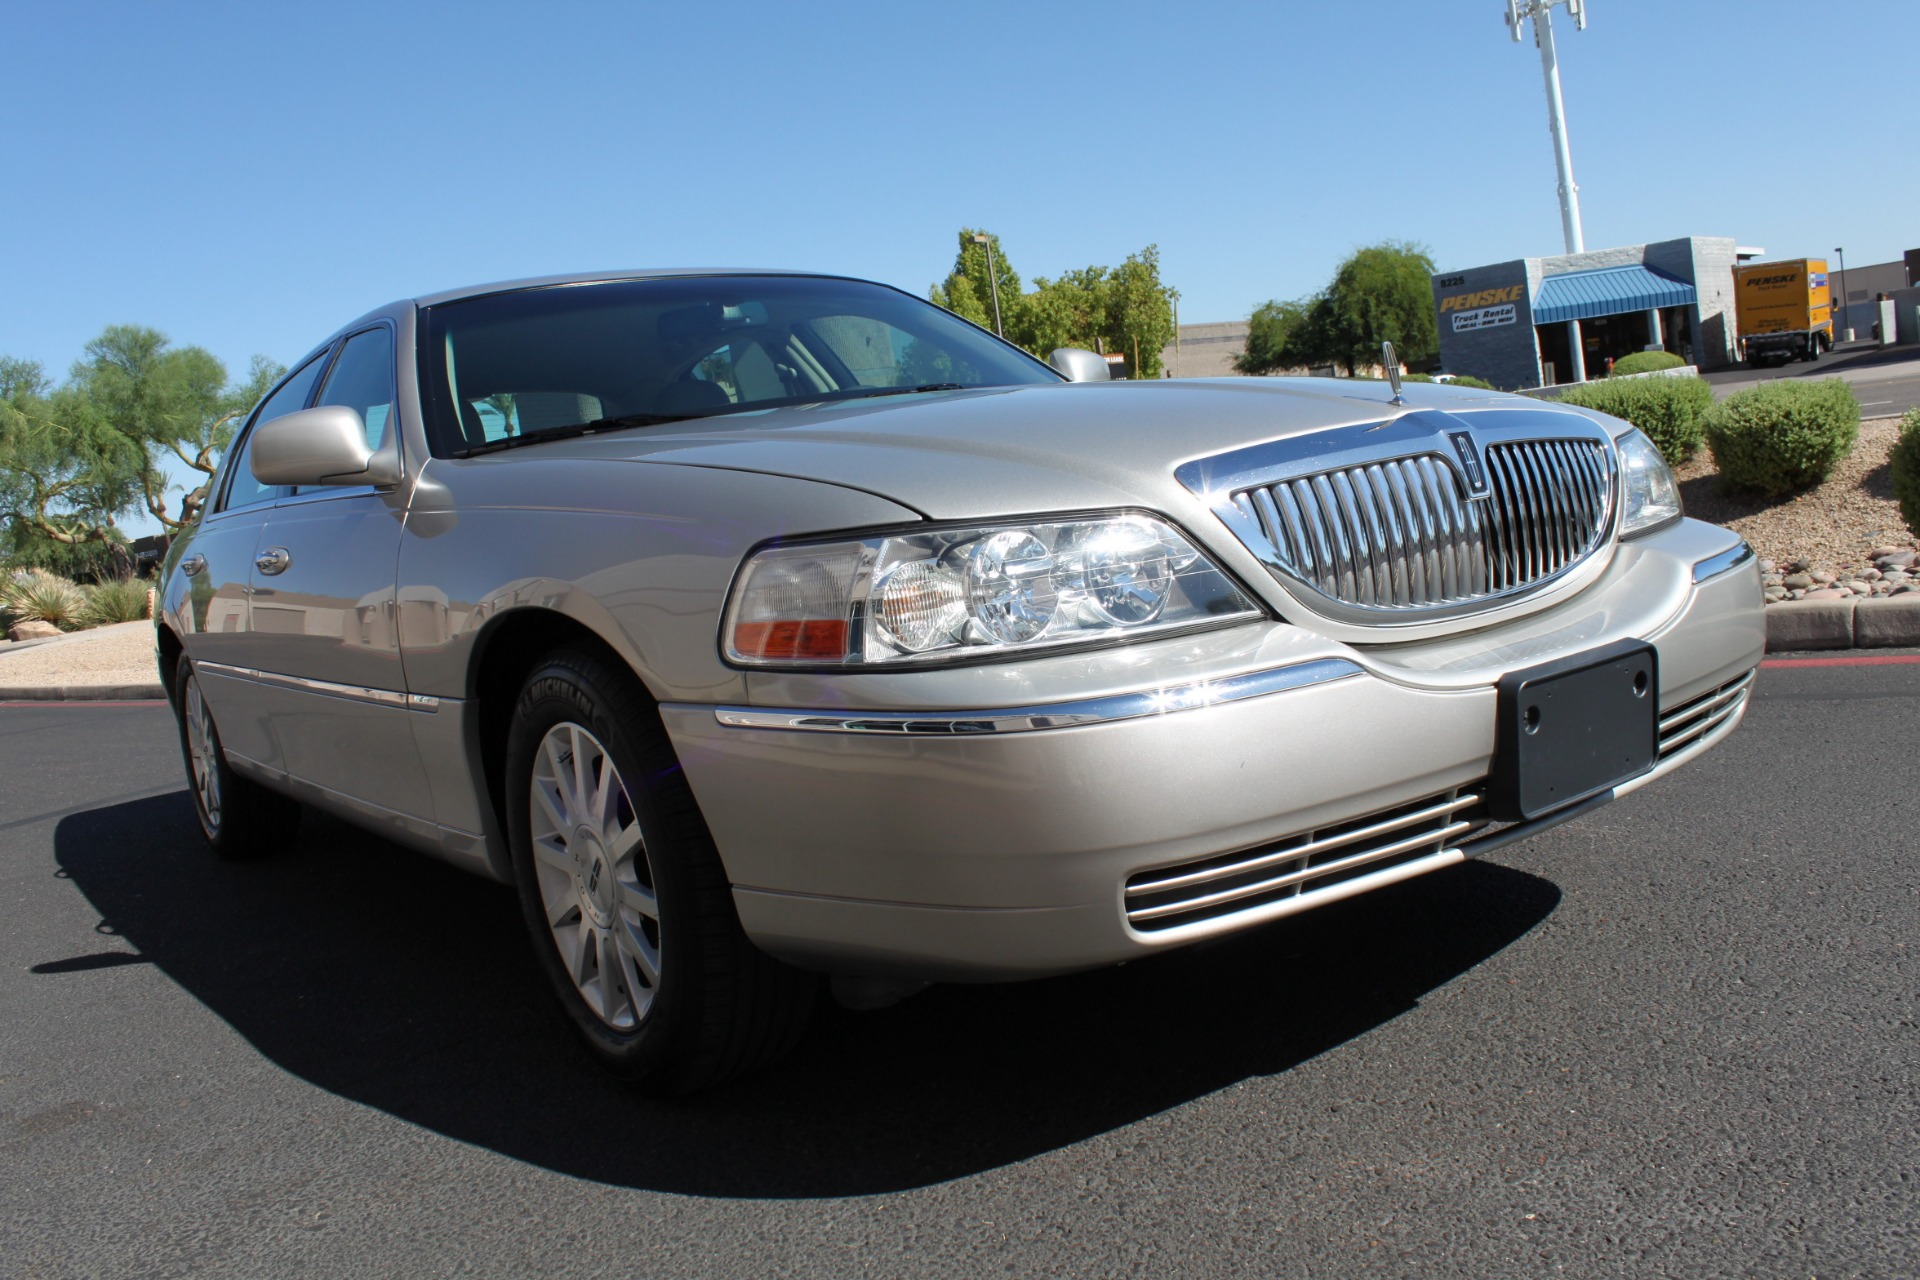 Used-2006-Lincoln-Town-Car-Signature-Mercedes-Benz